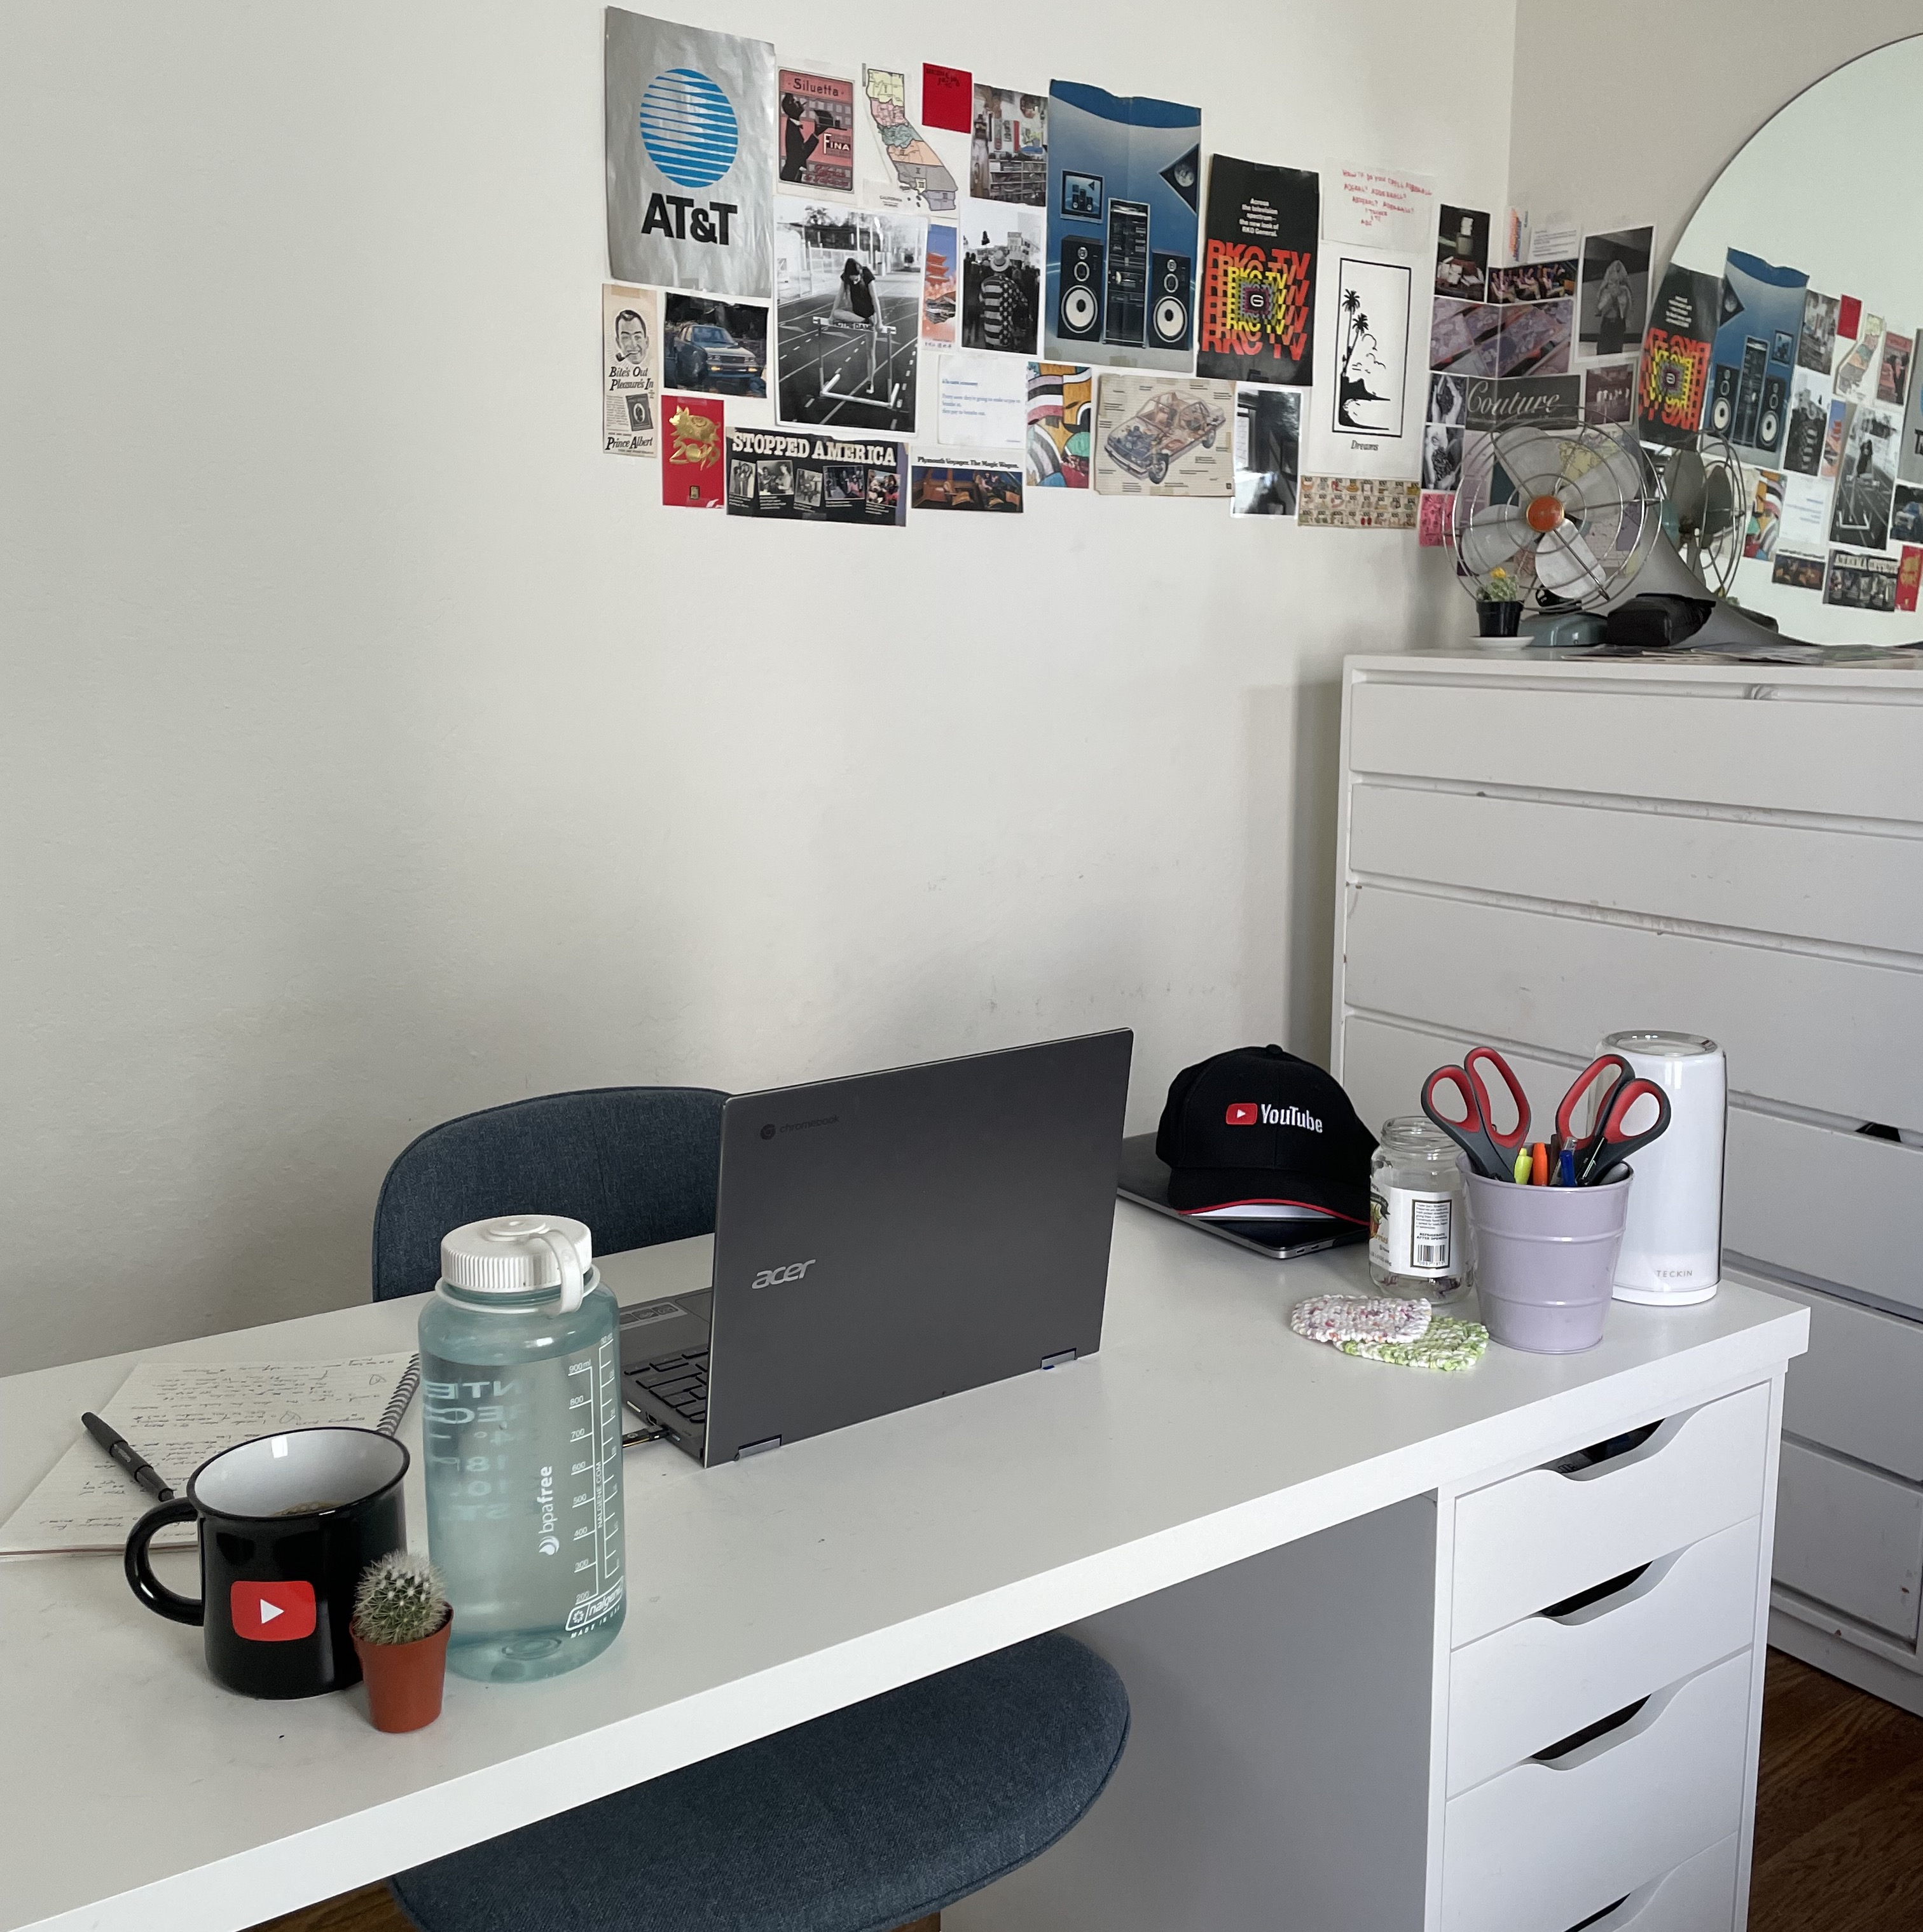 Yasmin's work from home set up with a desk and laptop.